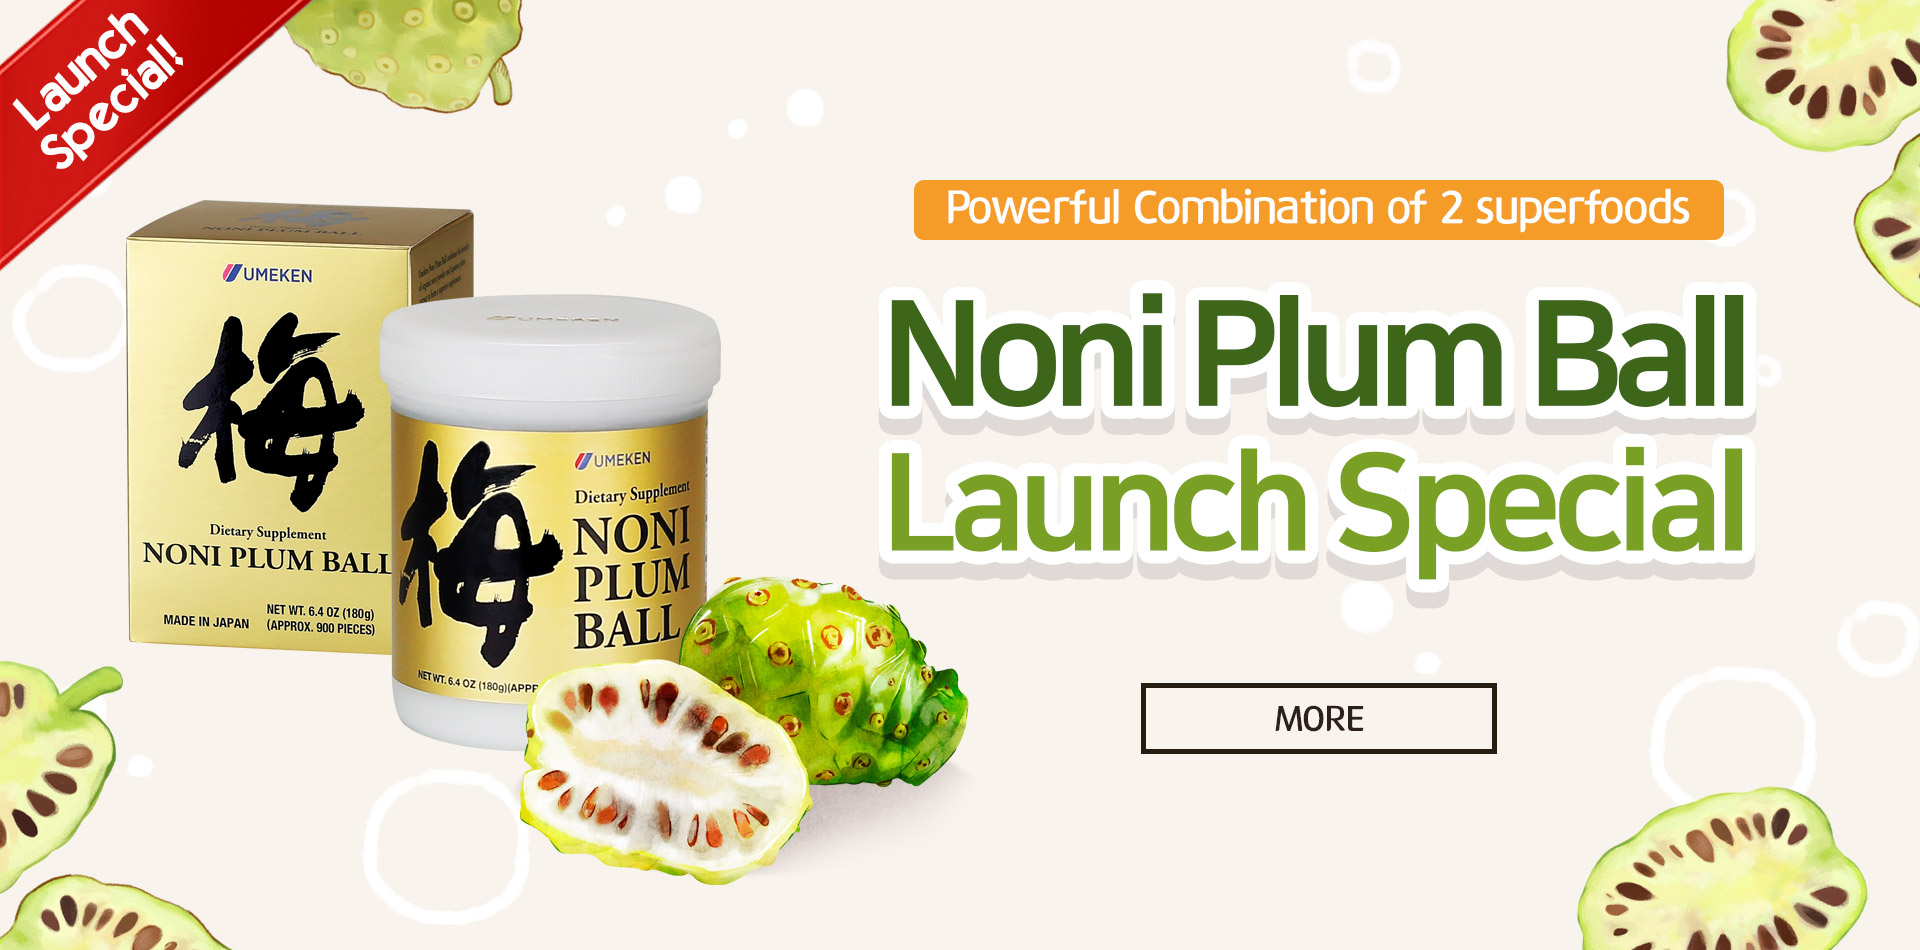 noni plum ball promotion